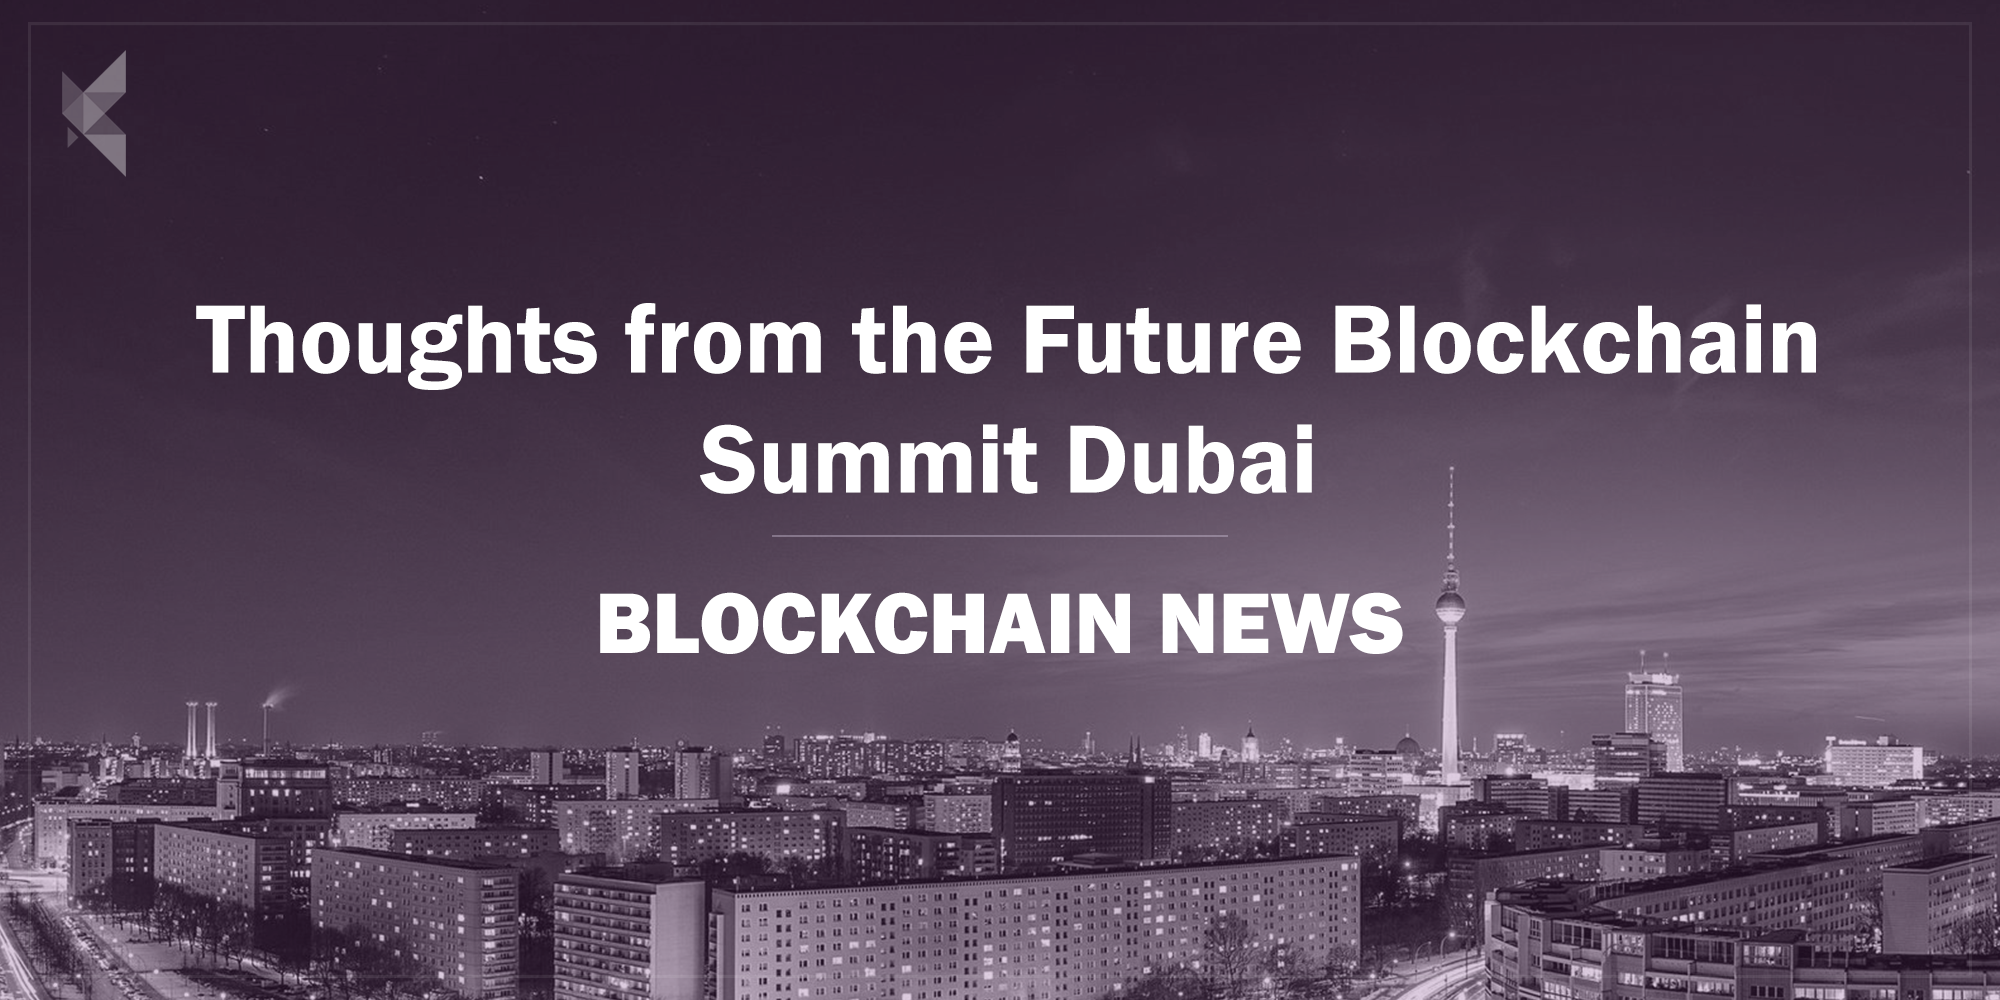 Thoughts from the Future Blockchain Summit, Dubai